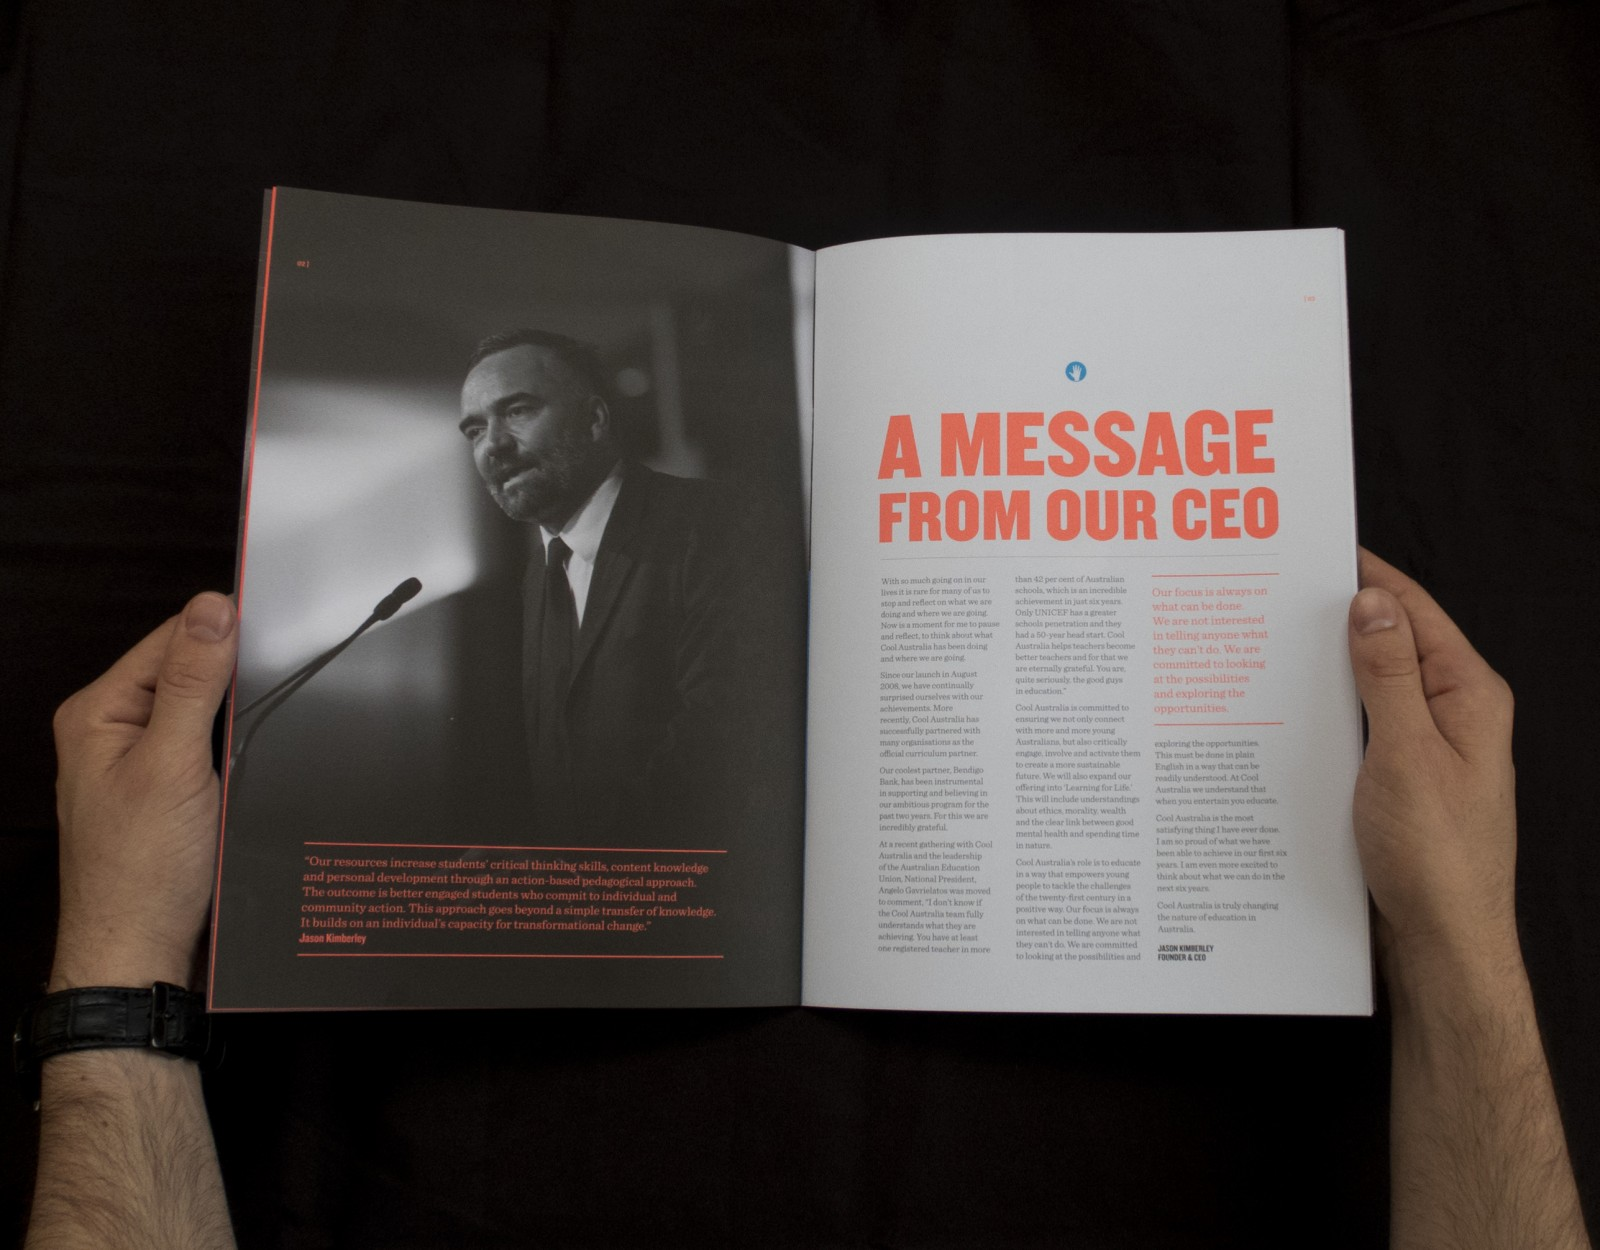 Cool Australia 2014 annual report message from ceo